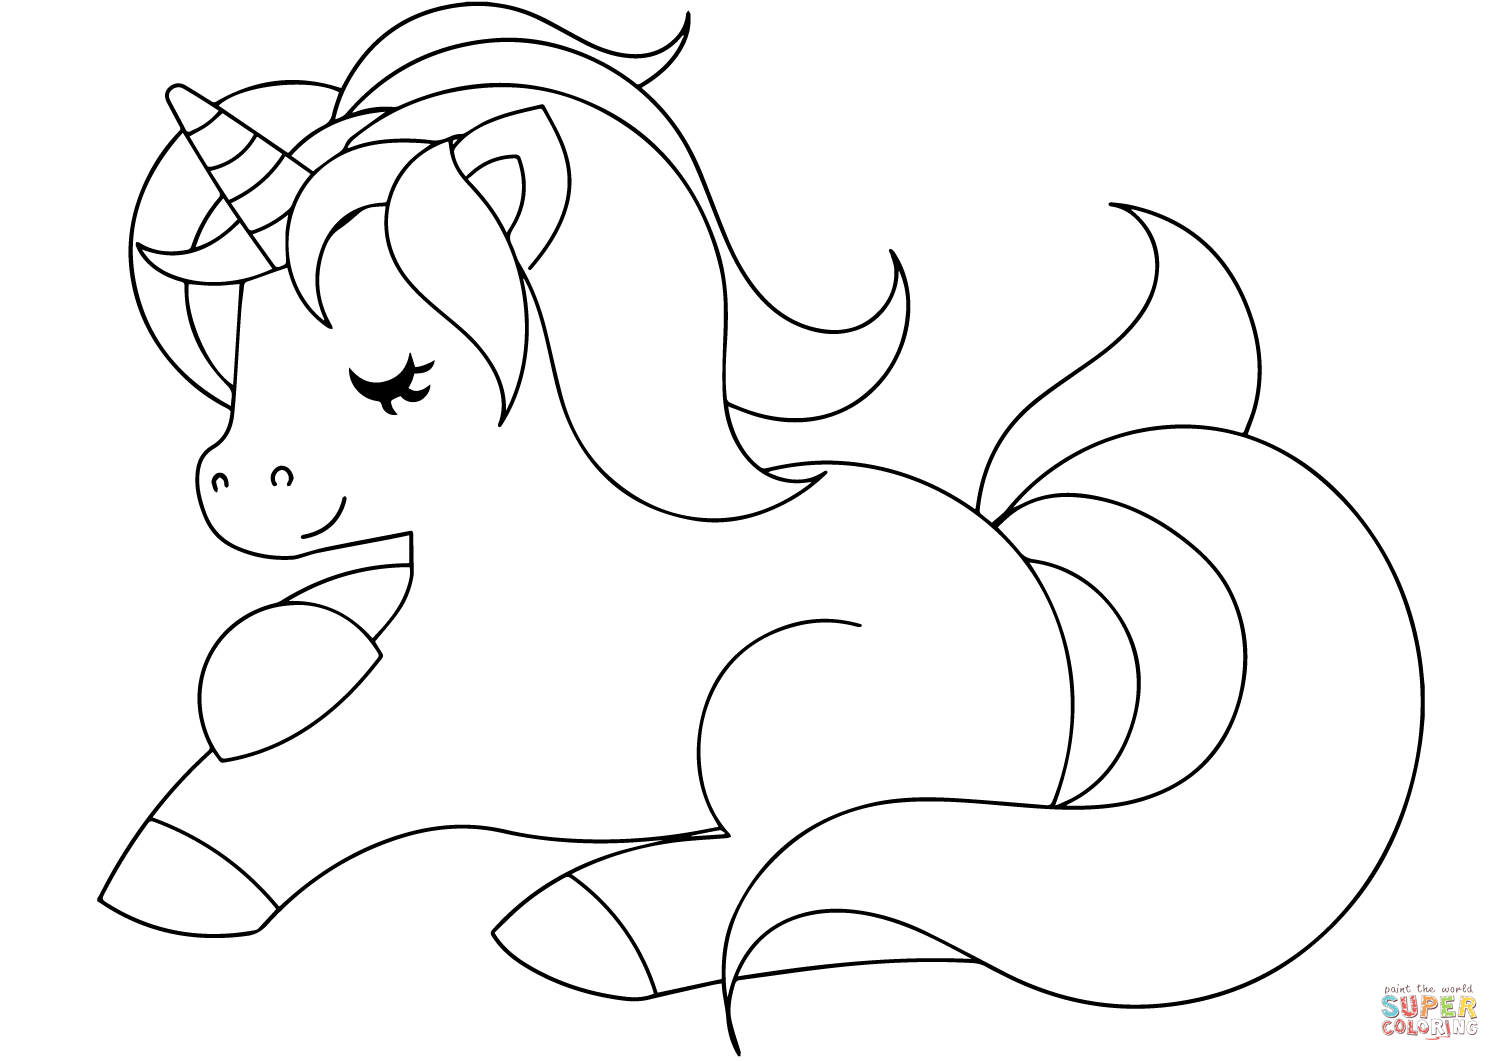 printable cute unicorn coloring pages cute unicorn coloring page free printable coloring pages pages printable cute unicorn coloring